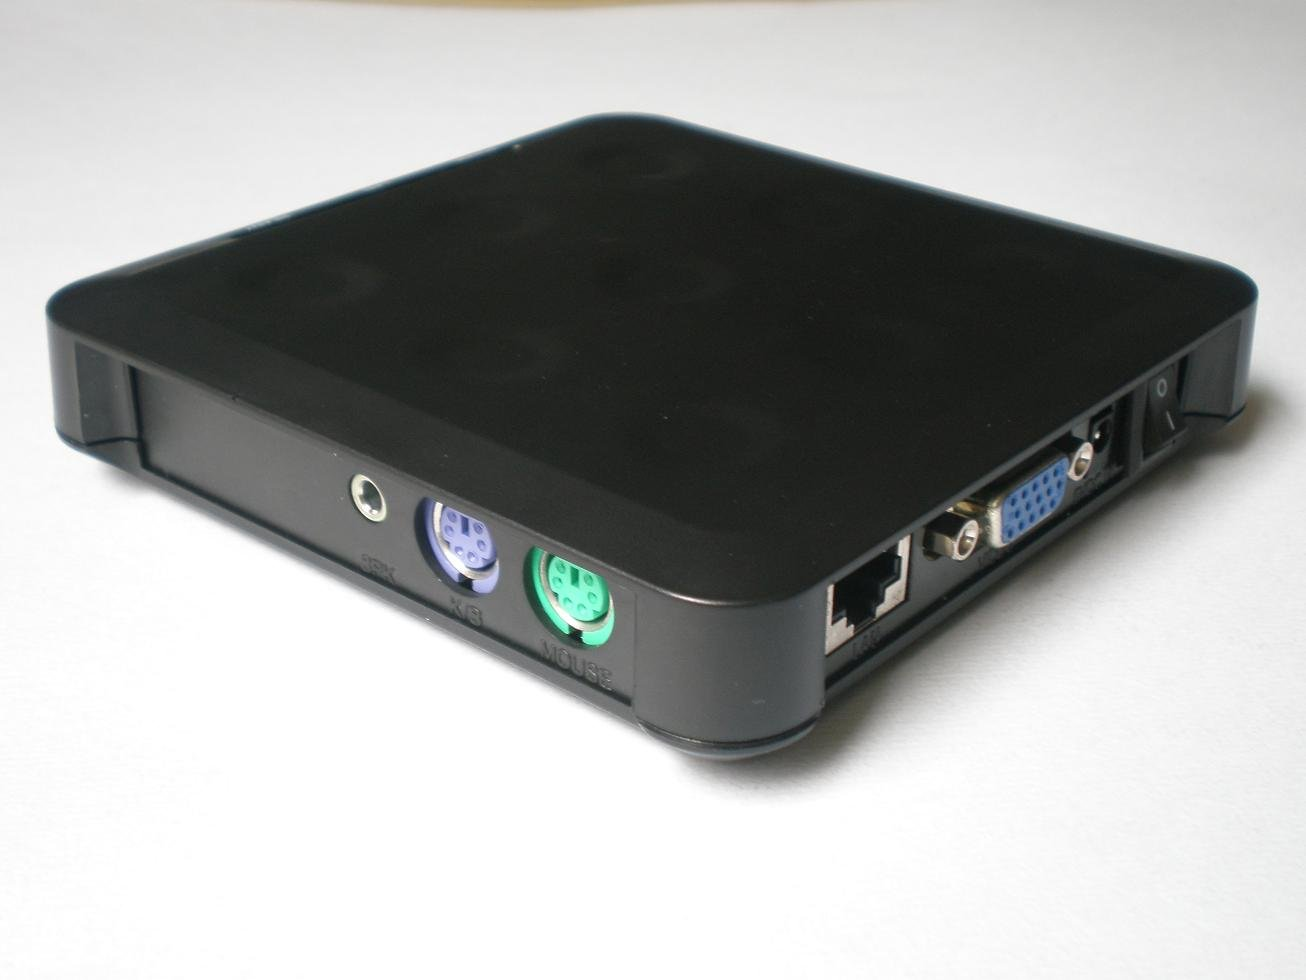 chip pc multi media network terminal network fanless pc Green pc computer terminal